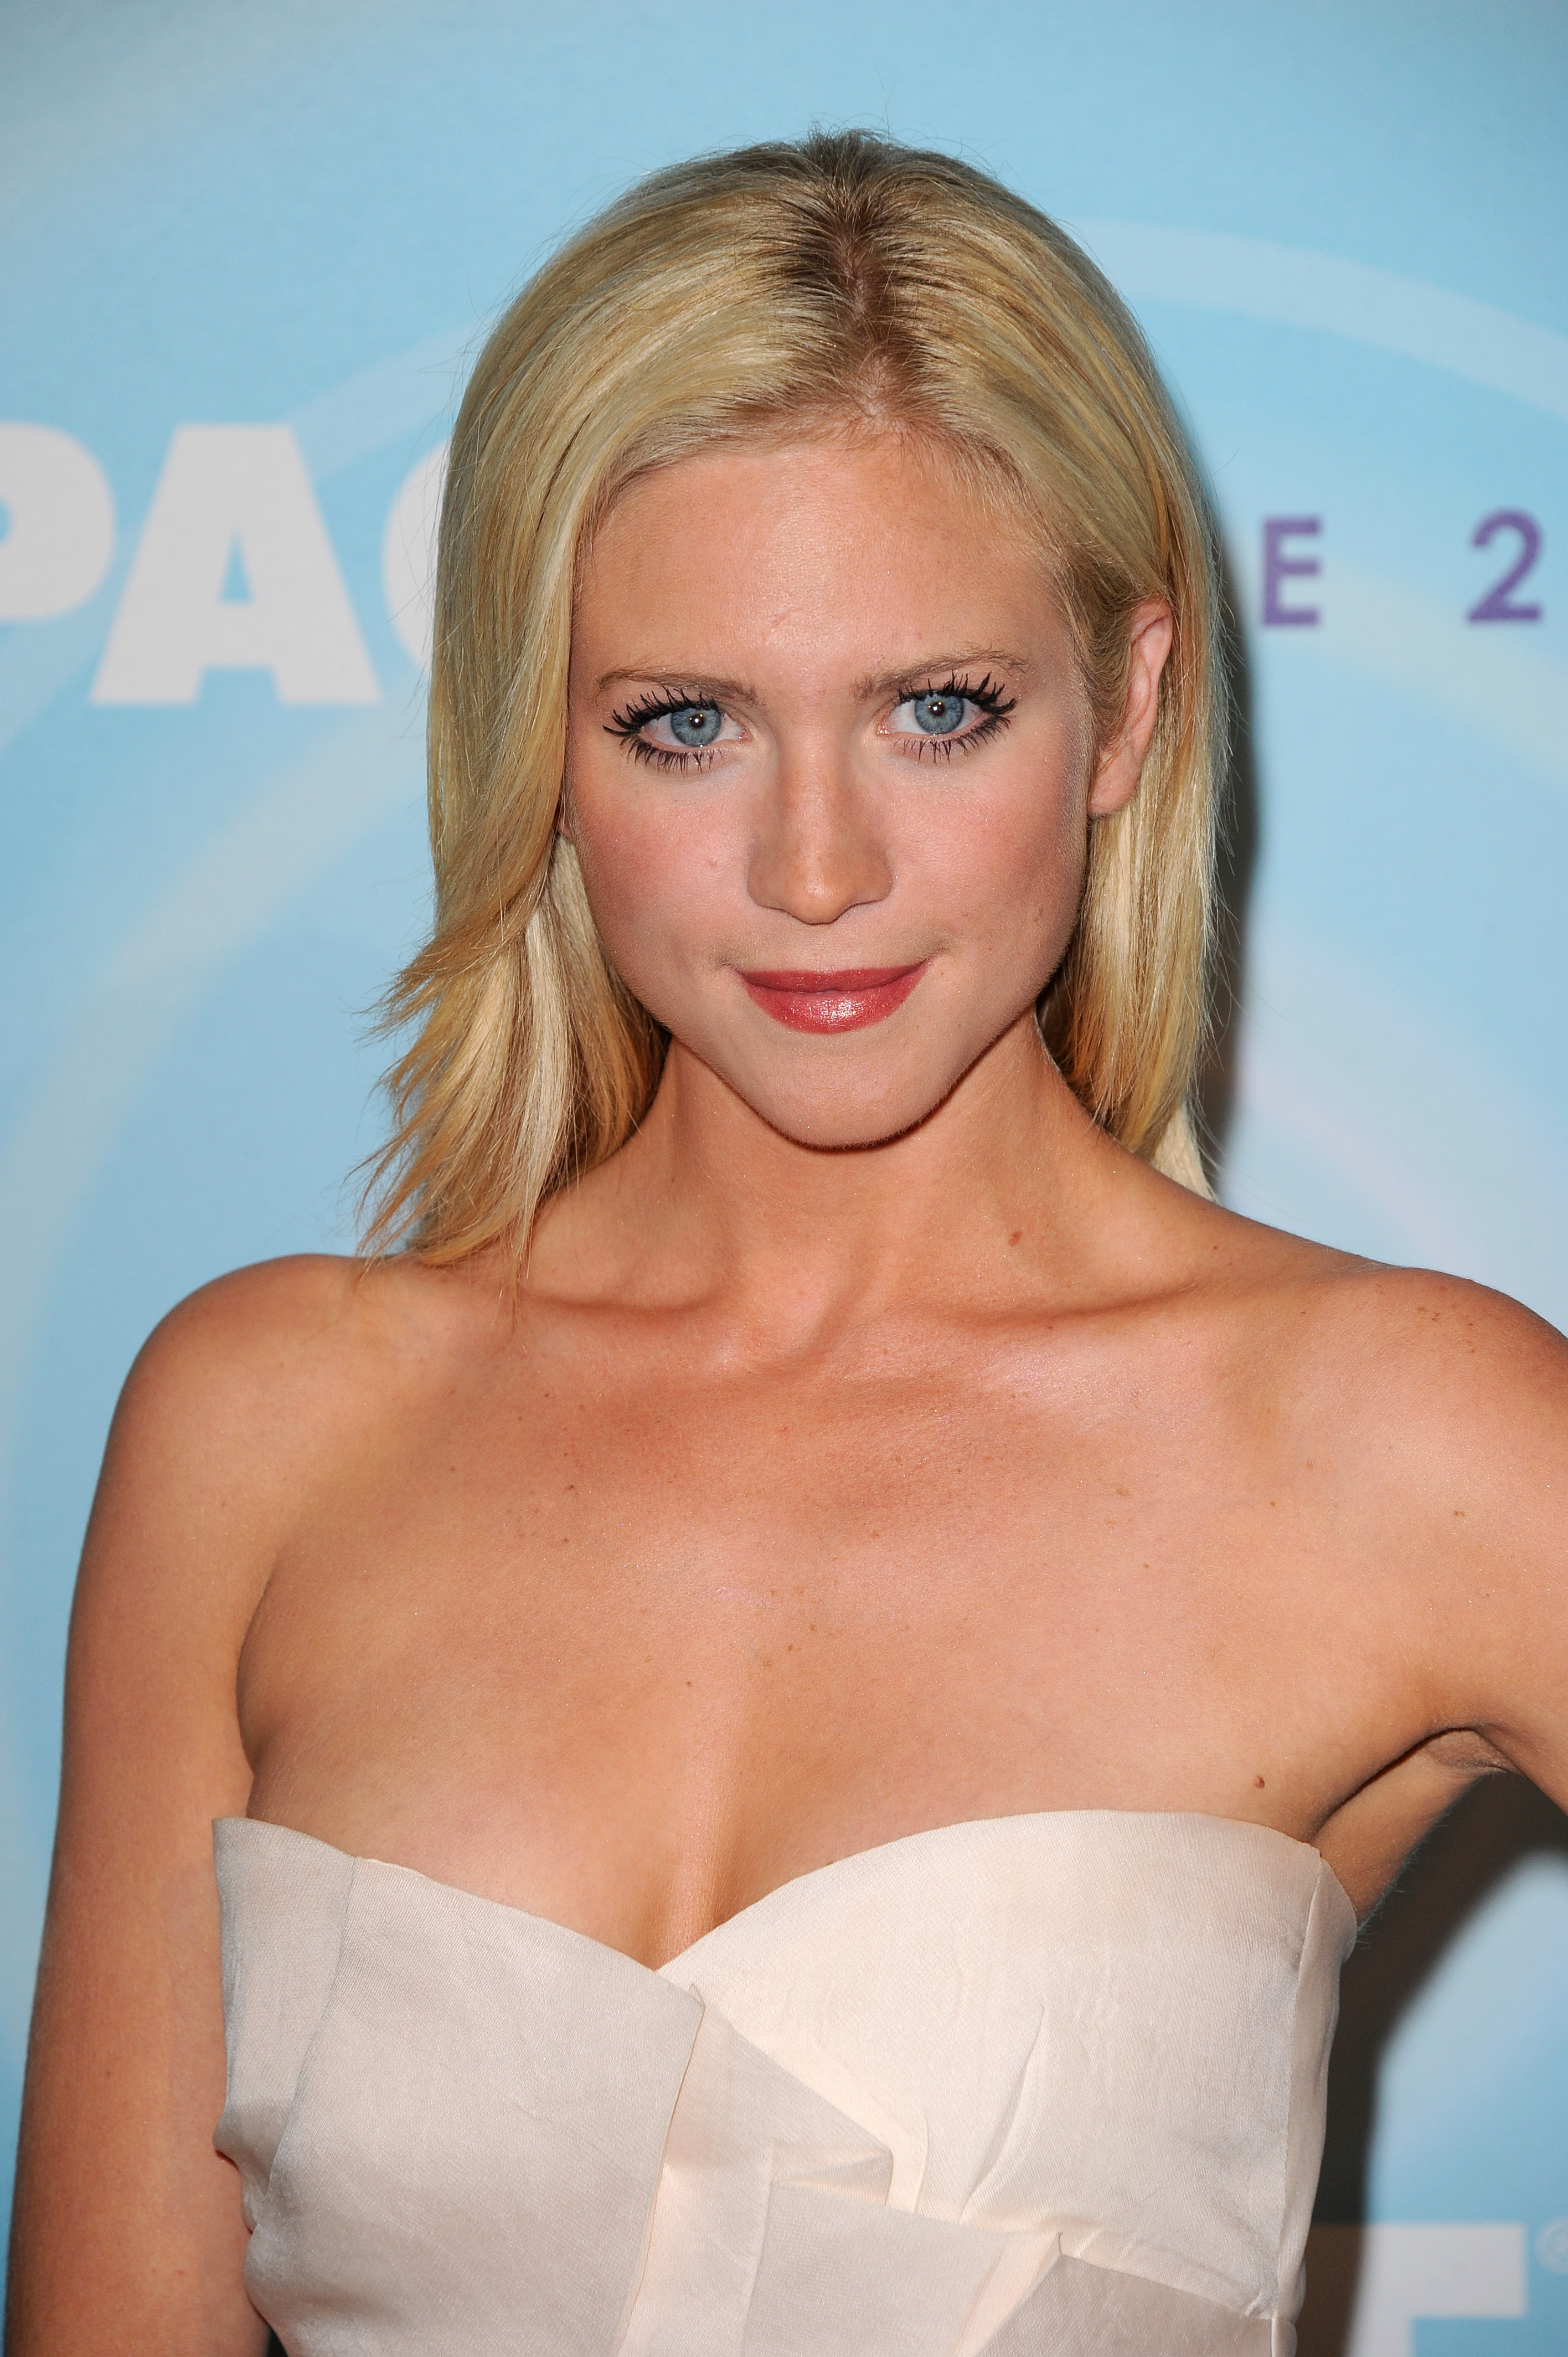 Brittany Snow Crystal Lucy Awards 11 J 0001 009